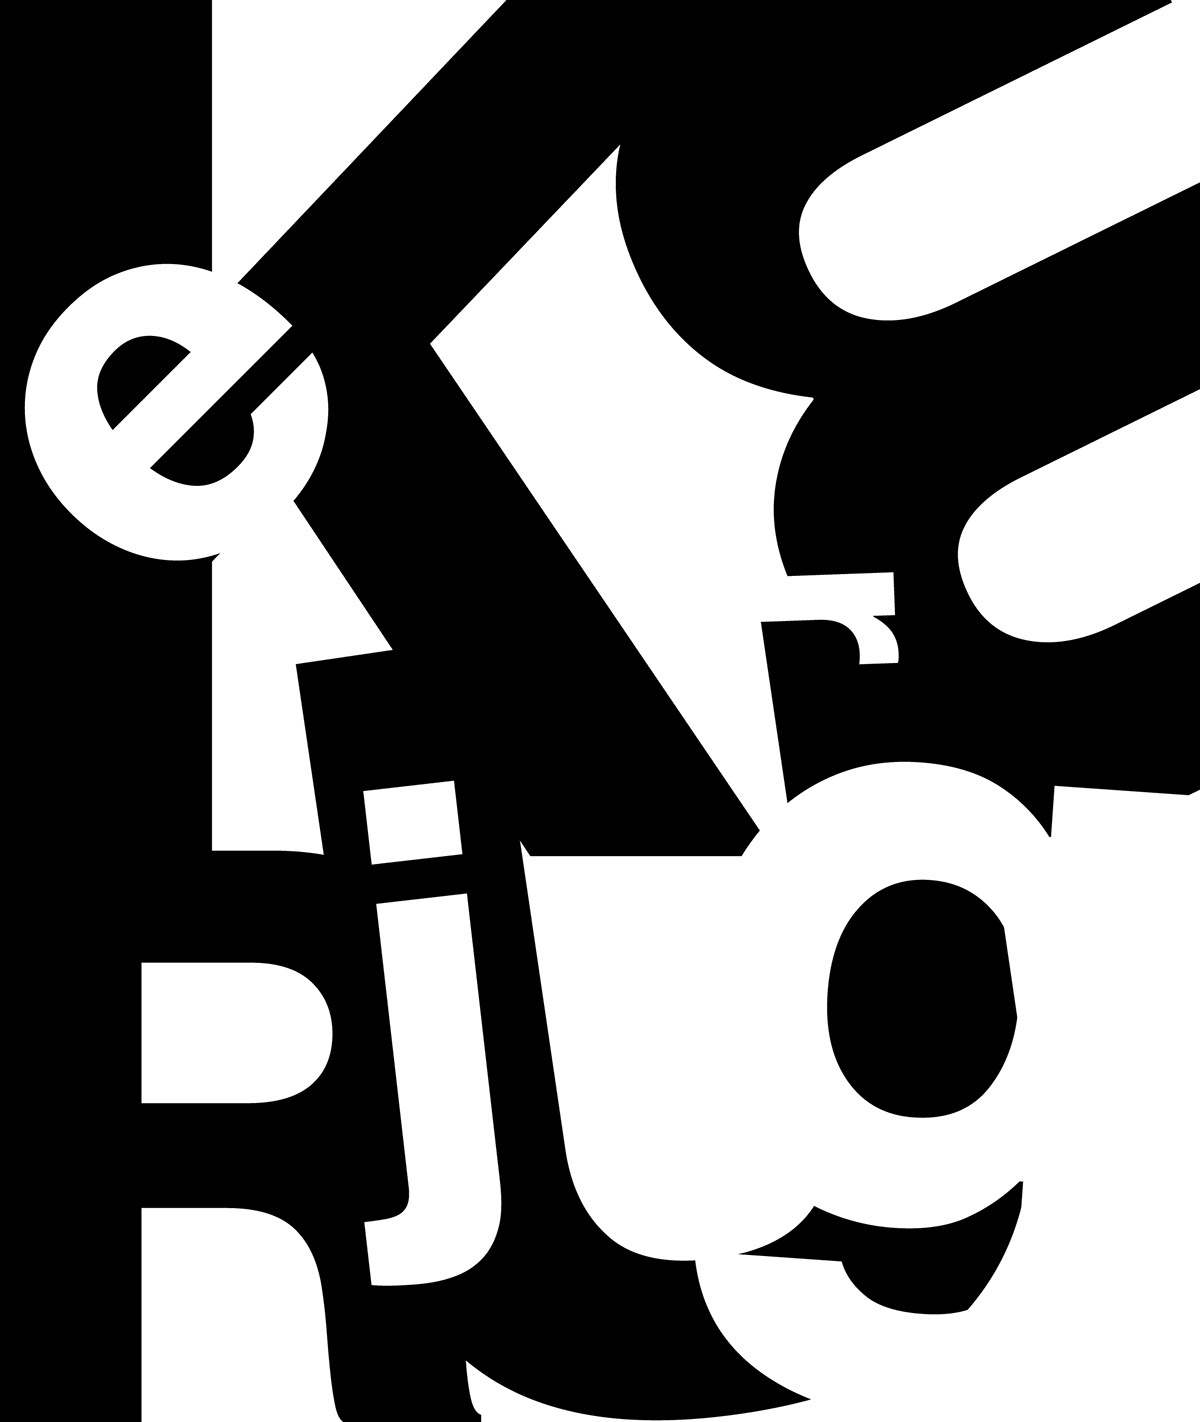 Abstract Typography Shapes Project On Behance